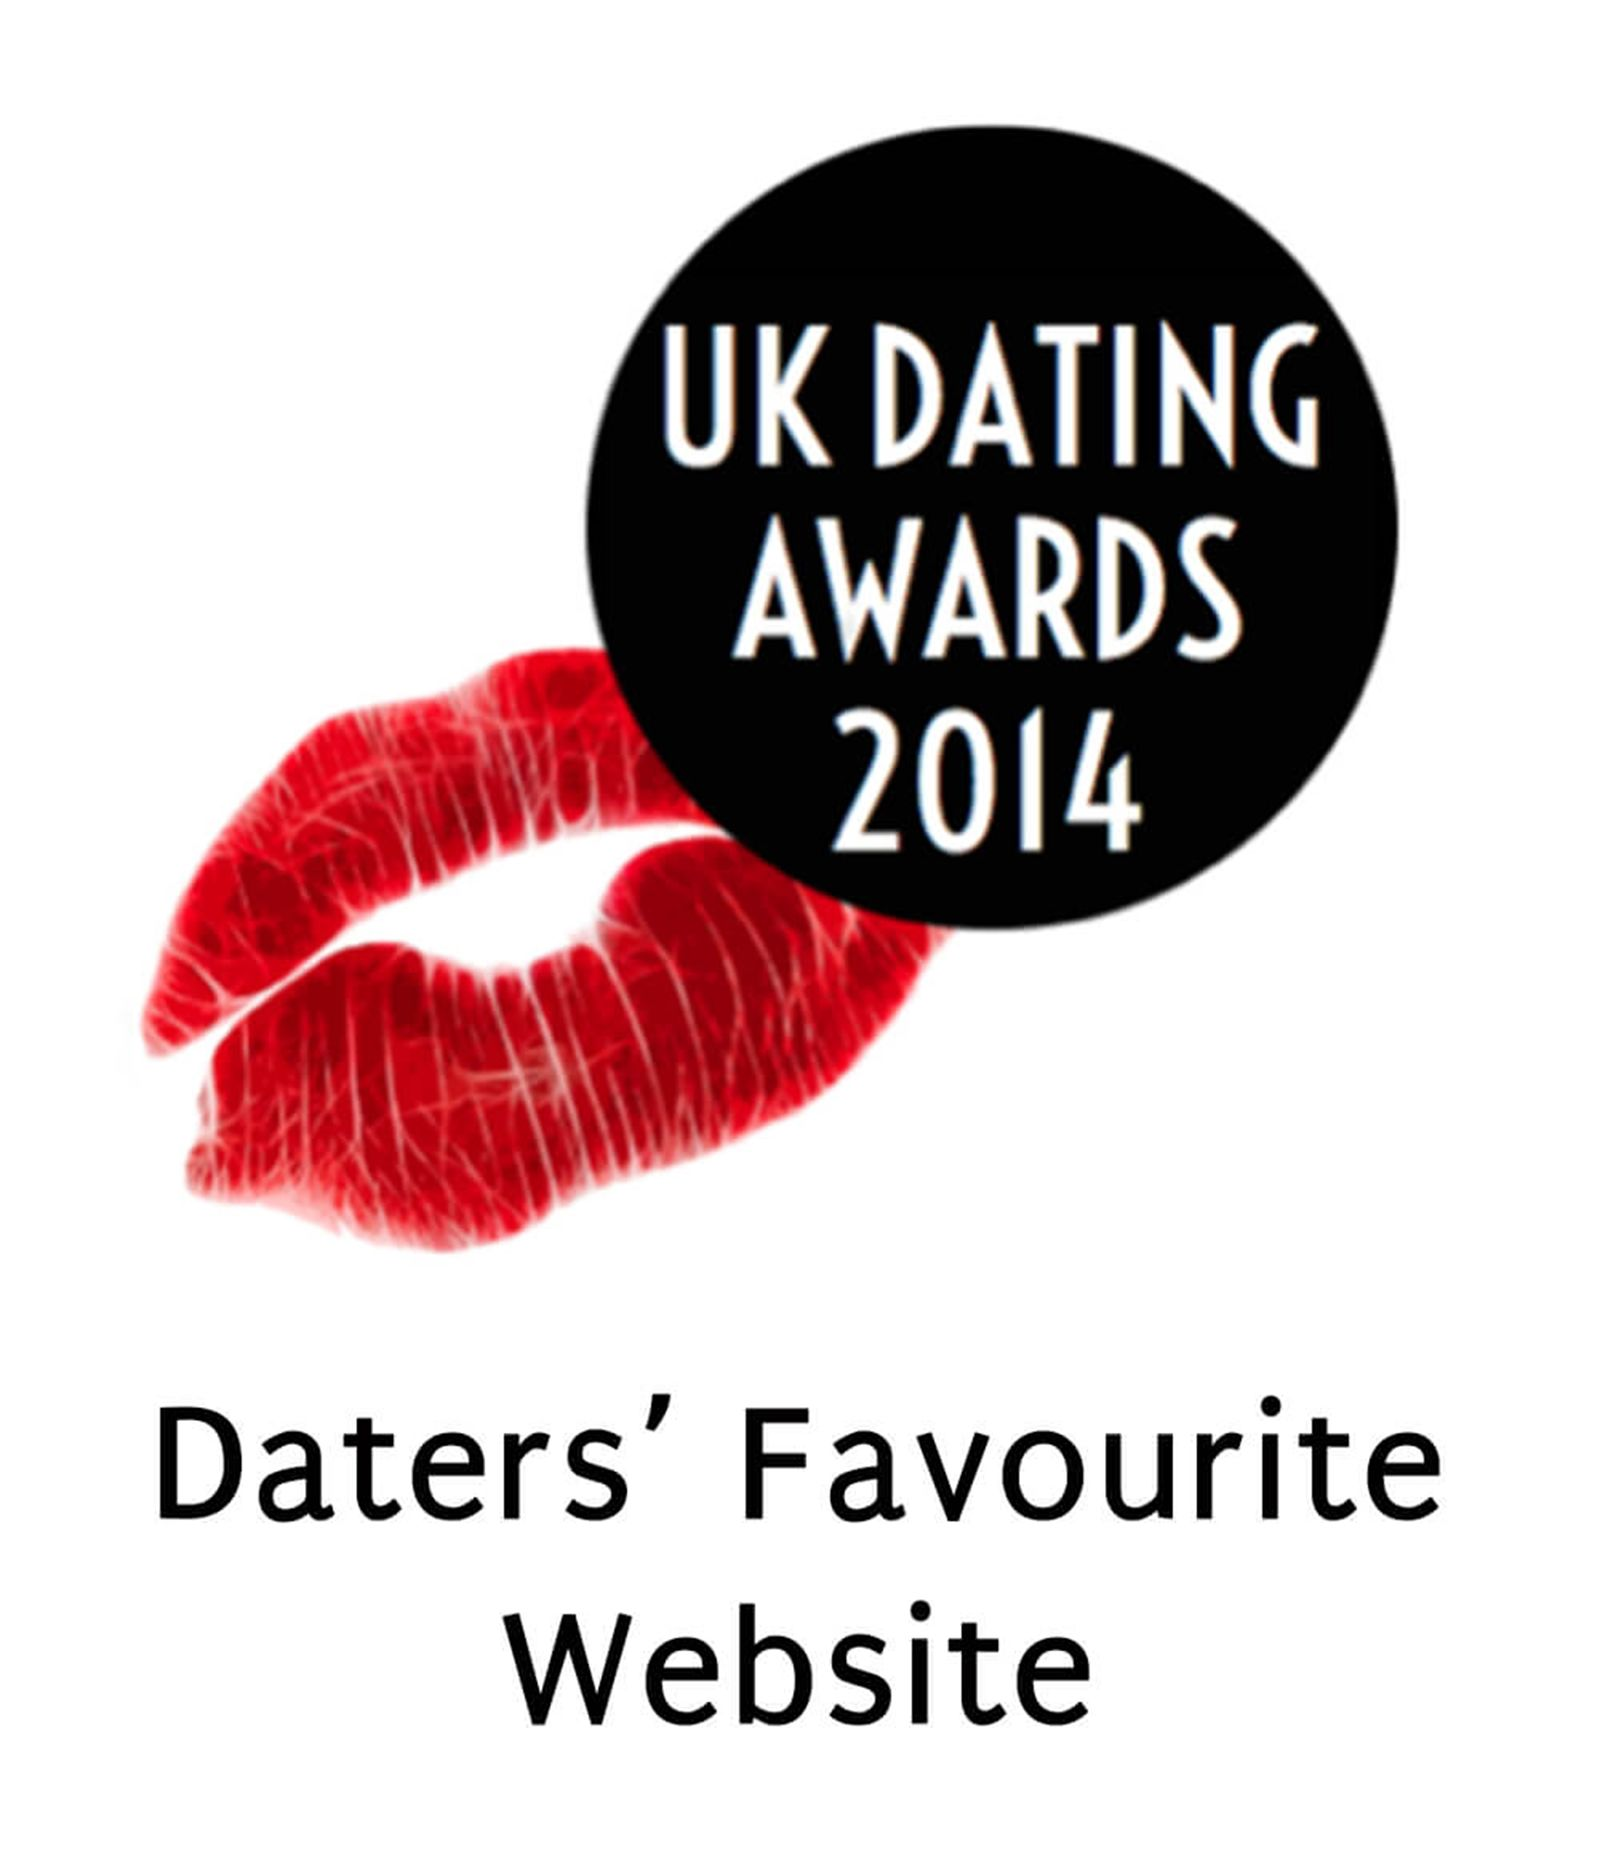 The Guardian Soulmates UK Dating Awards 2014 Daters' Favourite Website